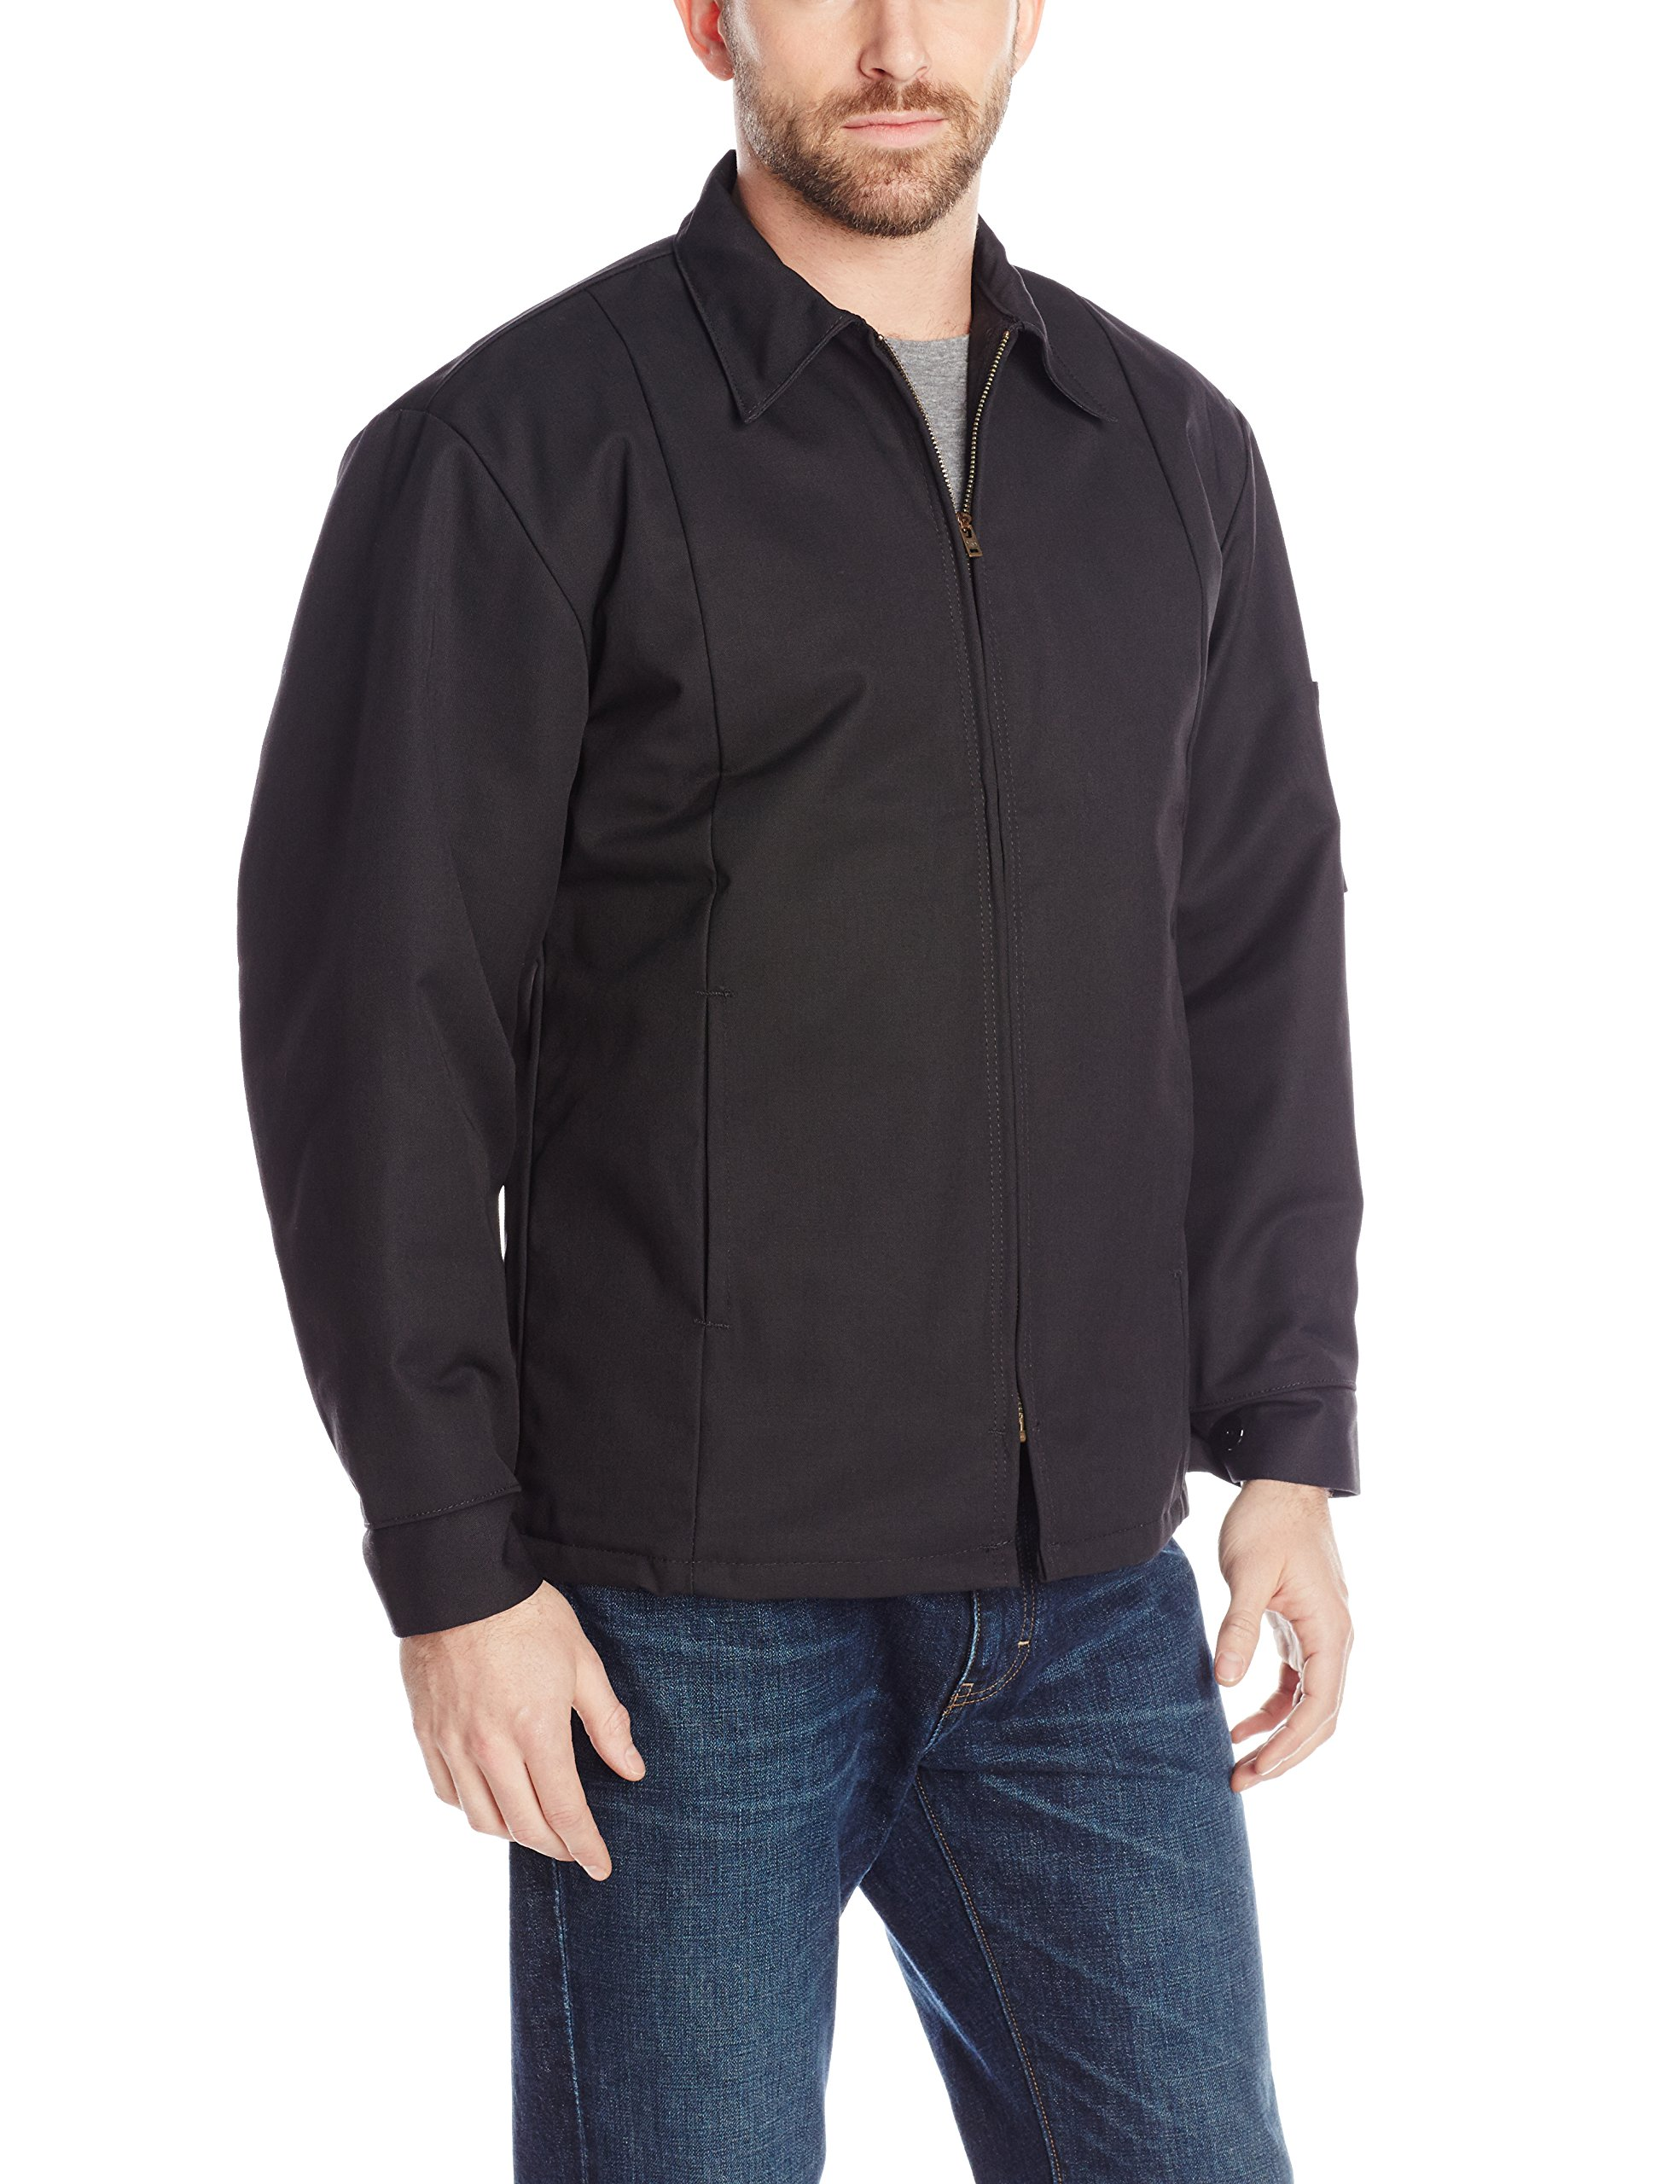 Red Kap Men's Perma-Lined Panel Jacket, Black, 4X-Large by Red Kap